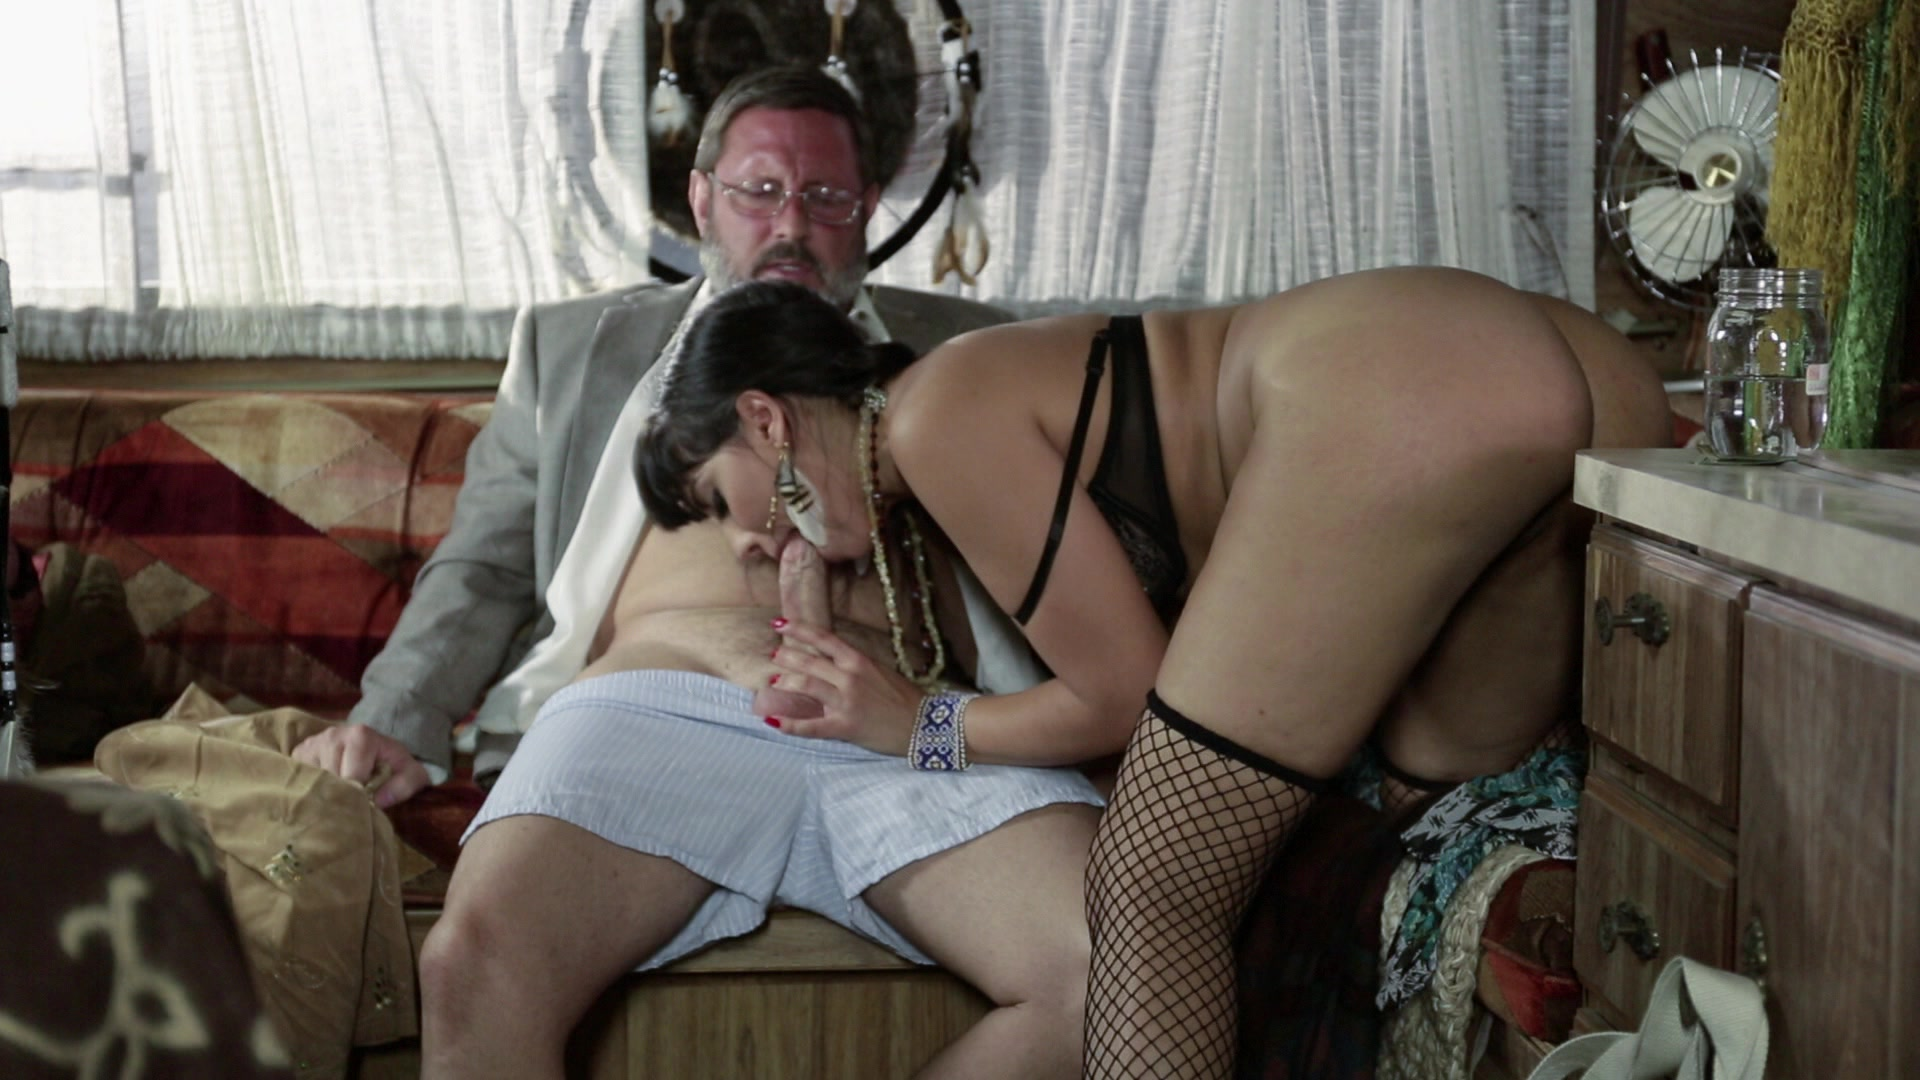 Scene with Brad Armstrong and Mercedes Carrera - image 11 out of 20